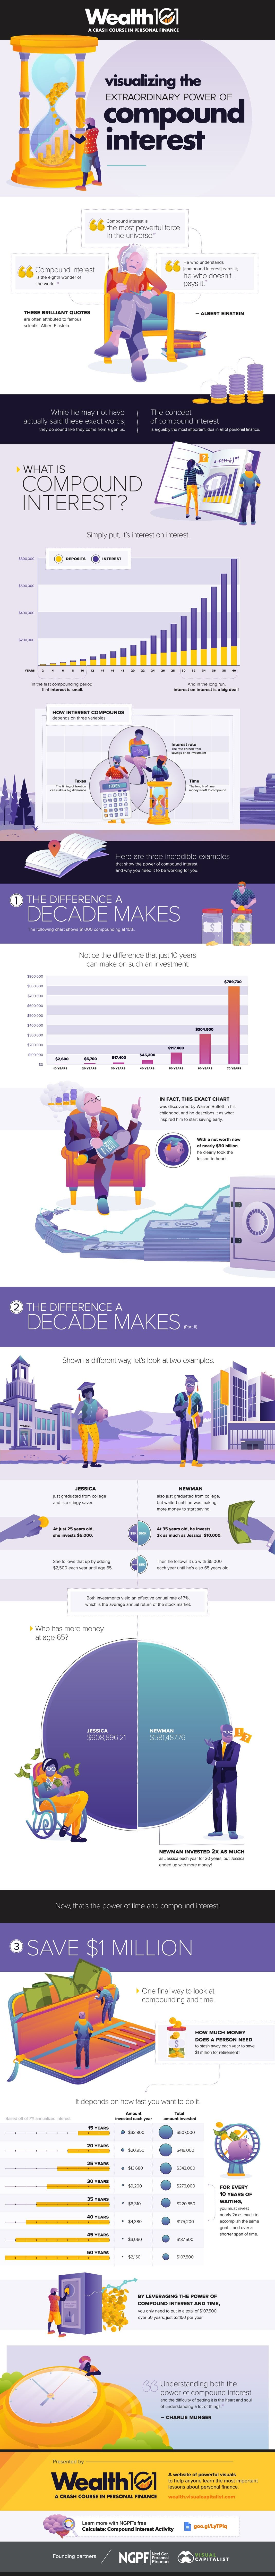 Visualizing the Extraordinary Power of Compound Interest #infographic